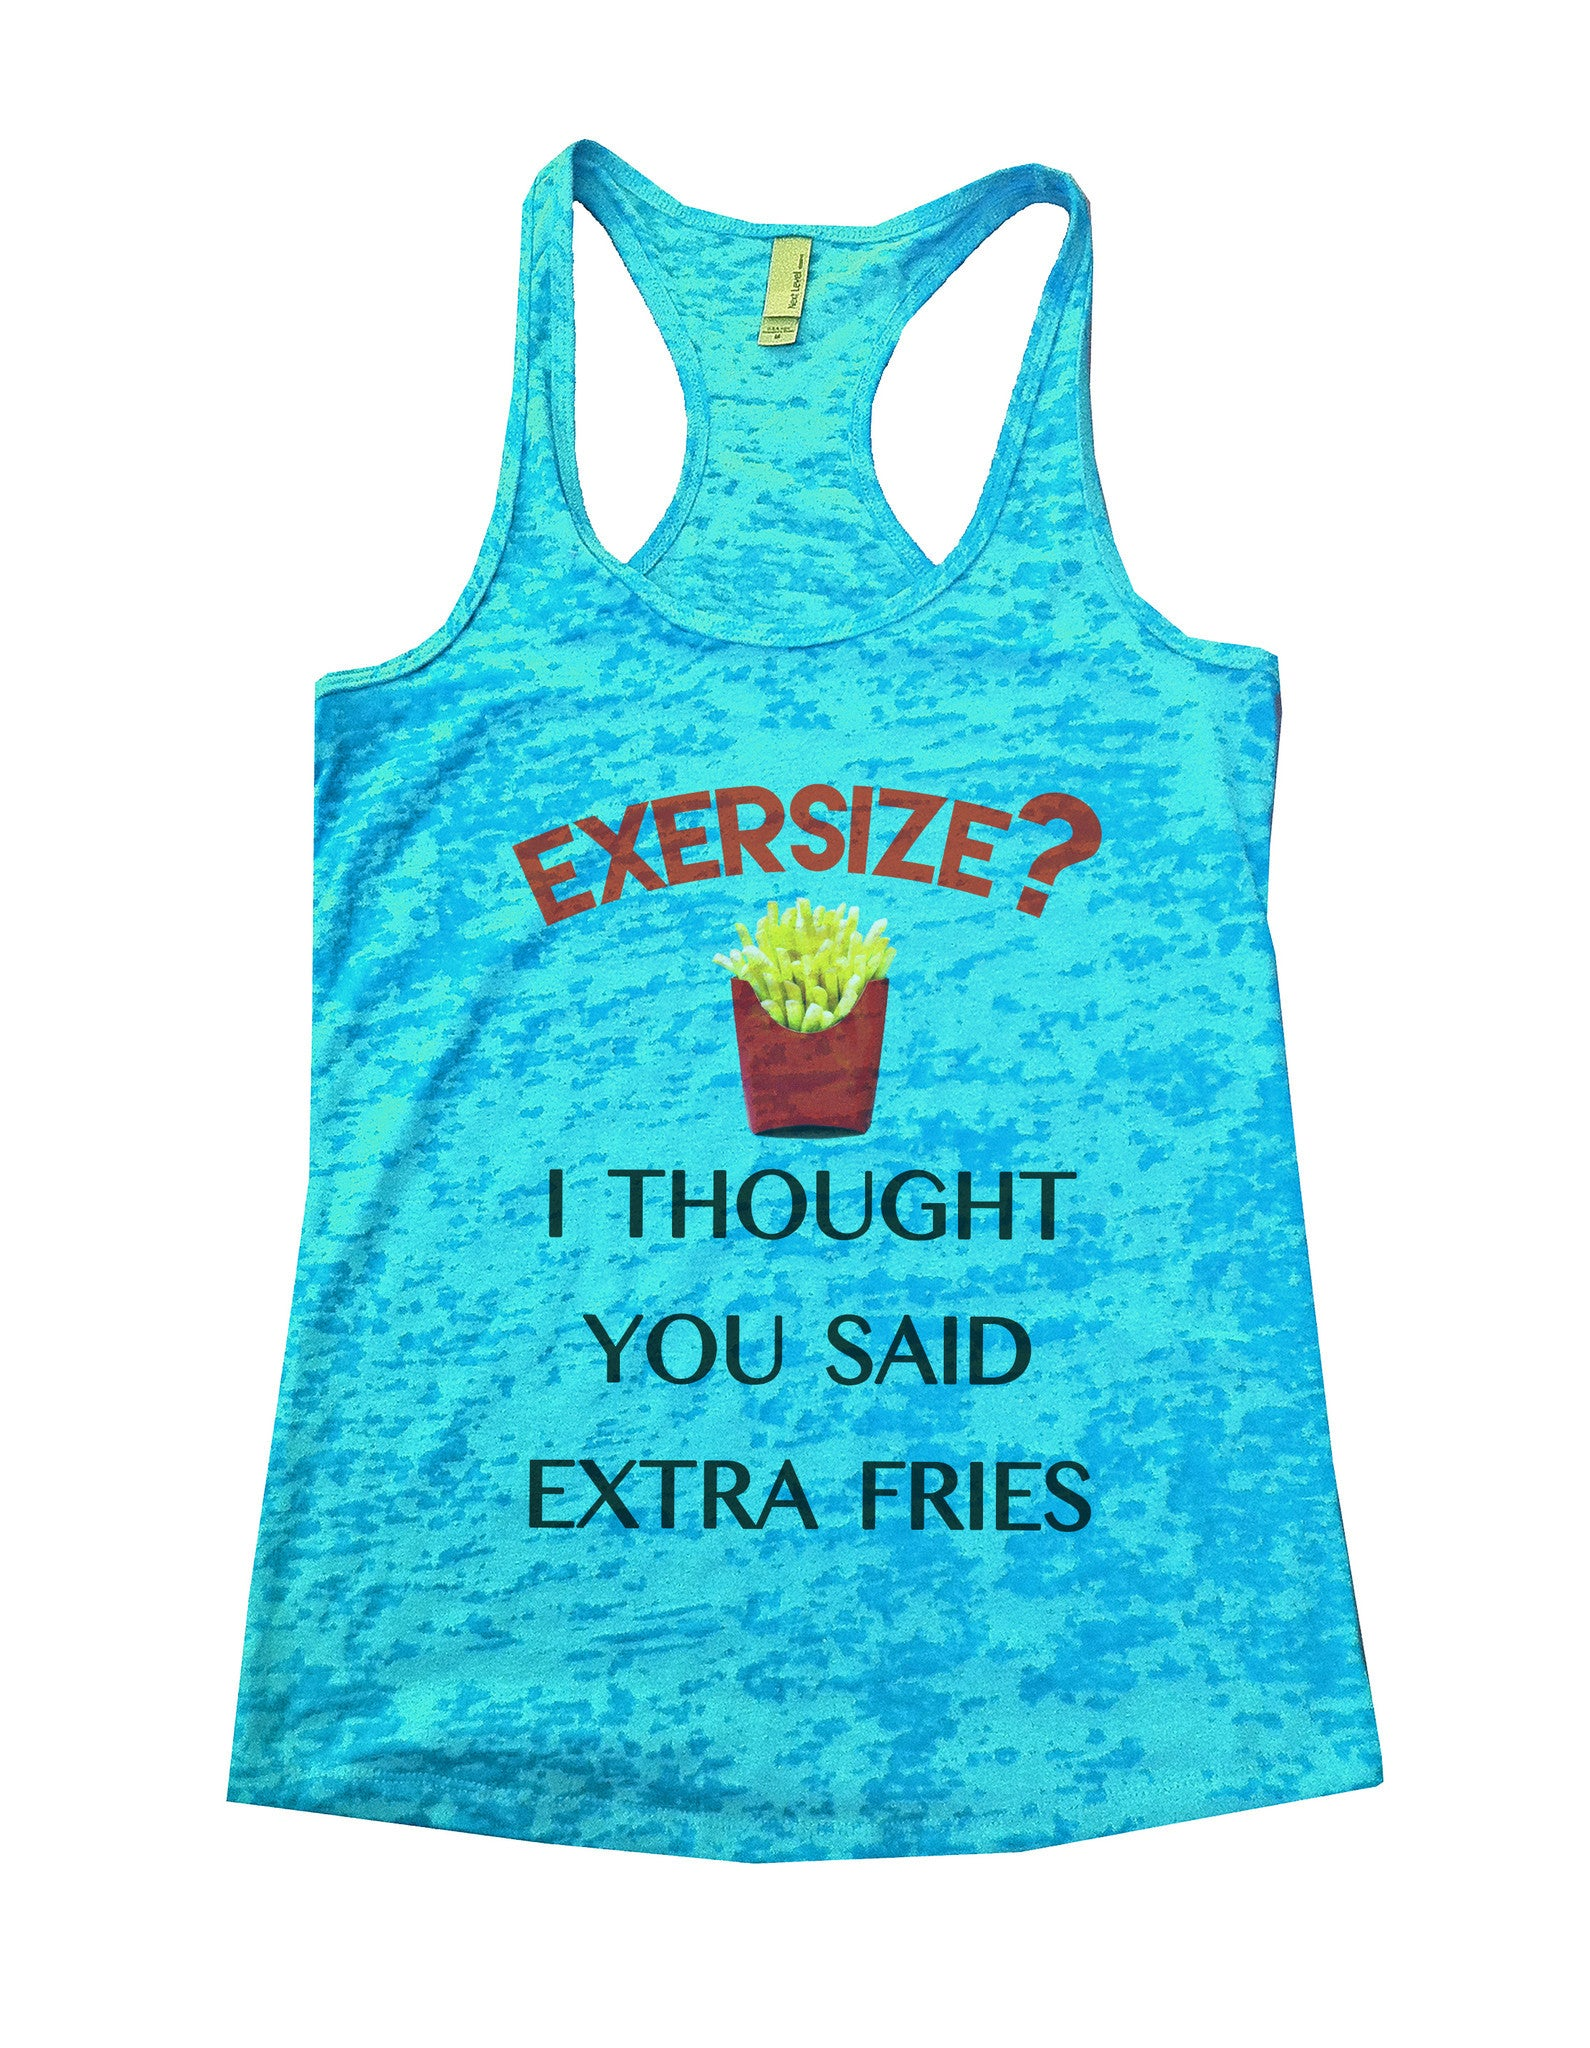 Exersize? I Thought You Said Extra Fries Burnout Tank Top By BurnoutTankTops.com - 518 - Funny Shirts Tank Tops Burnouts and Triblends  - 1